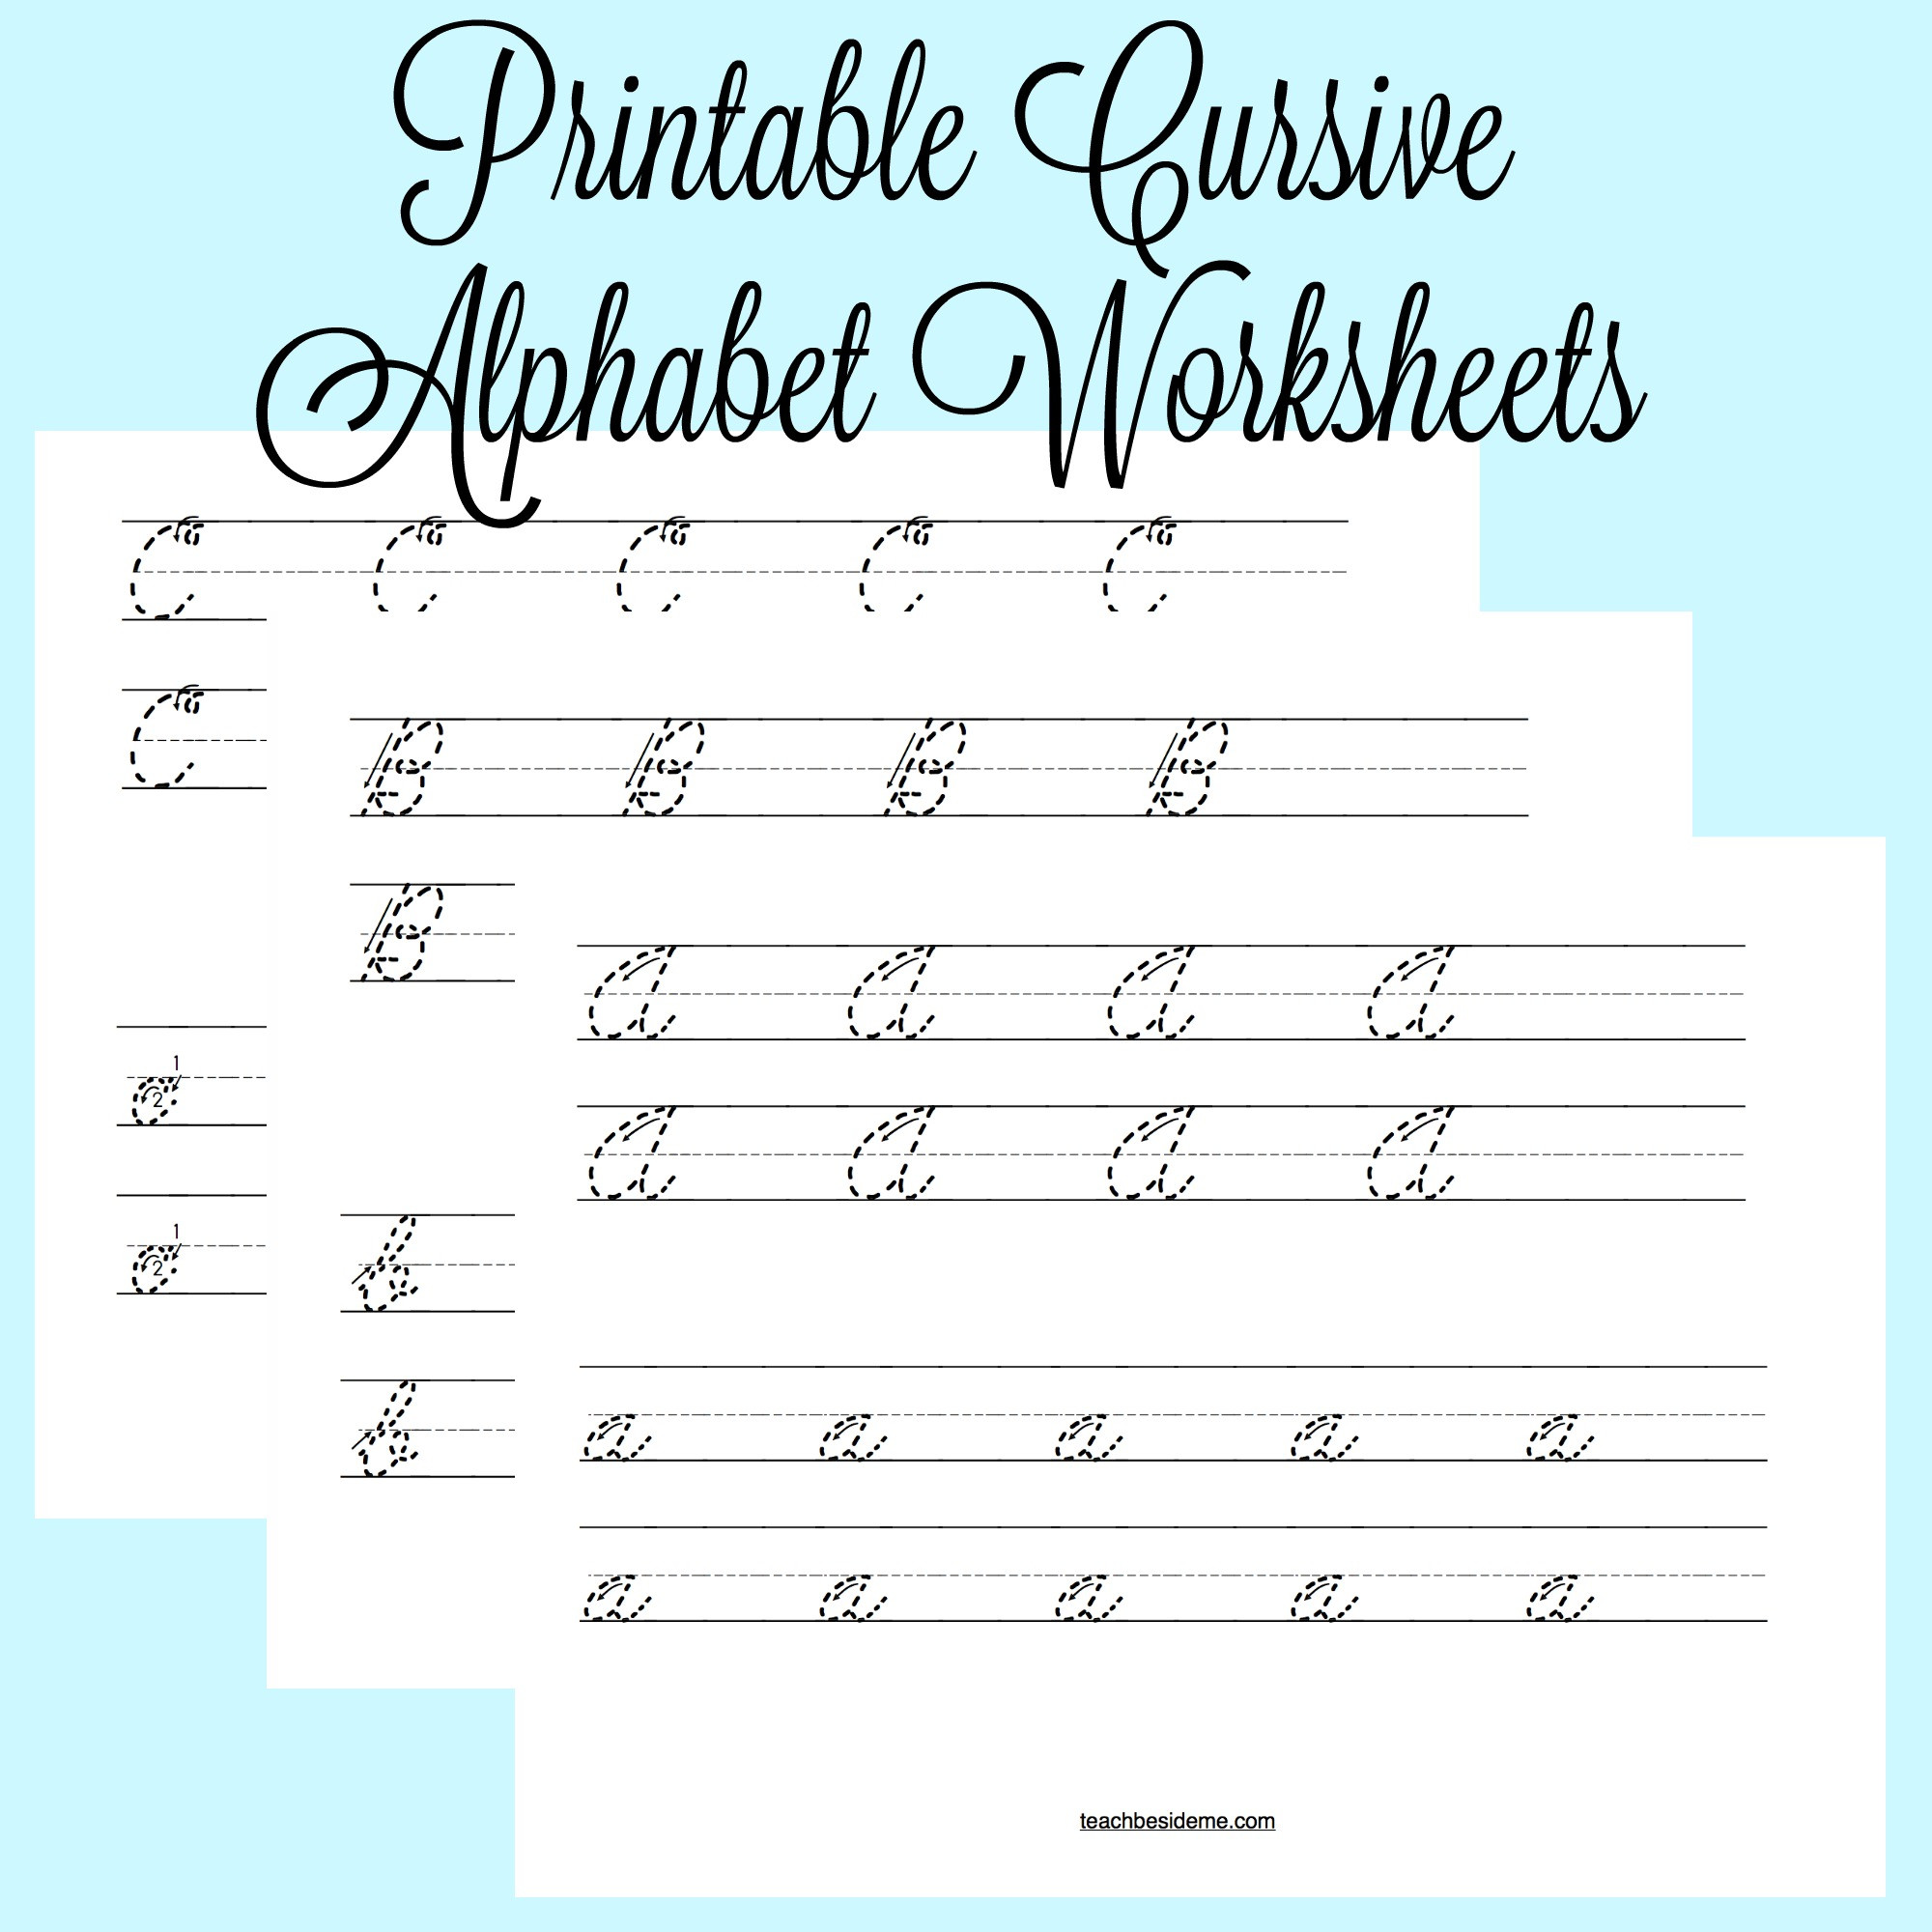 Free Printable Cursive Alphabet Chart Math Worksheet Printable Cursive Alphabet Practice Sheets